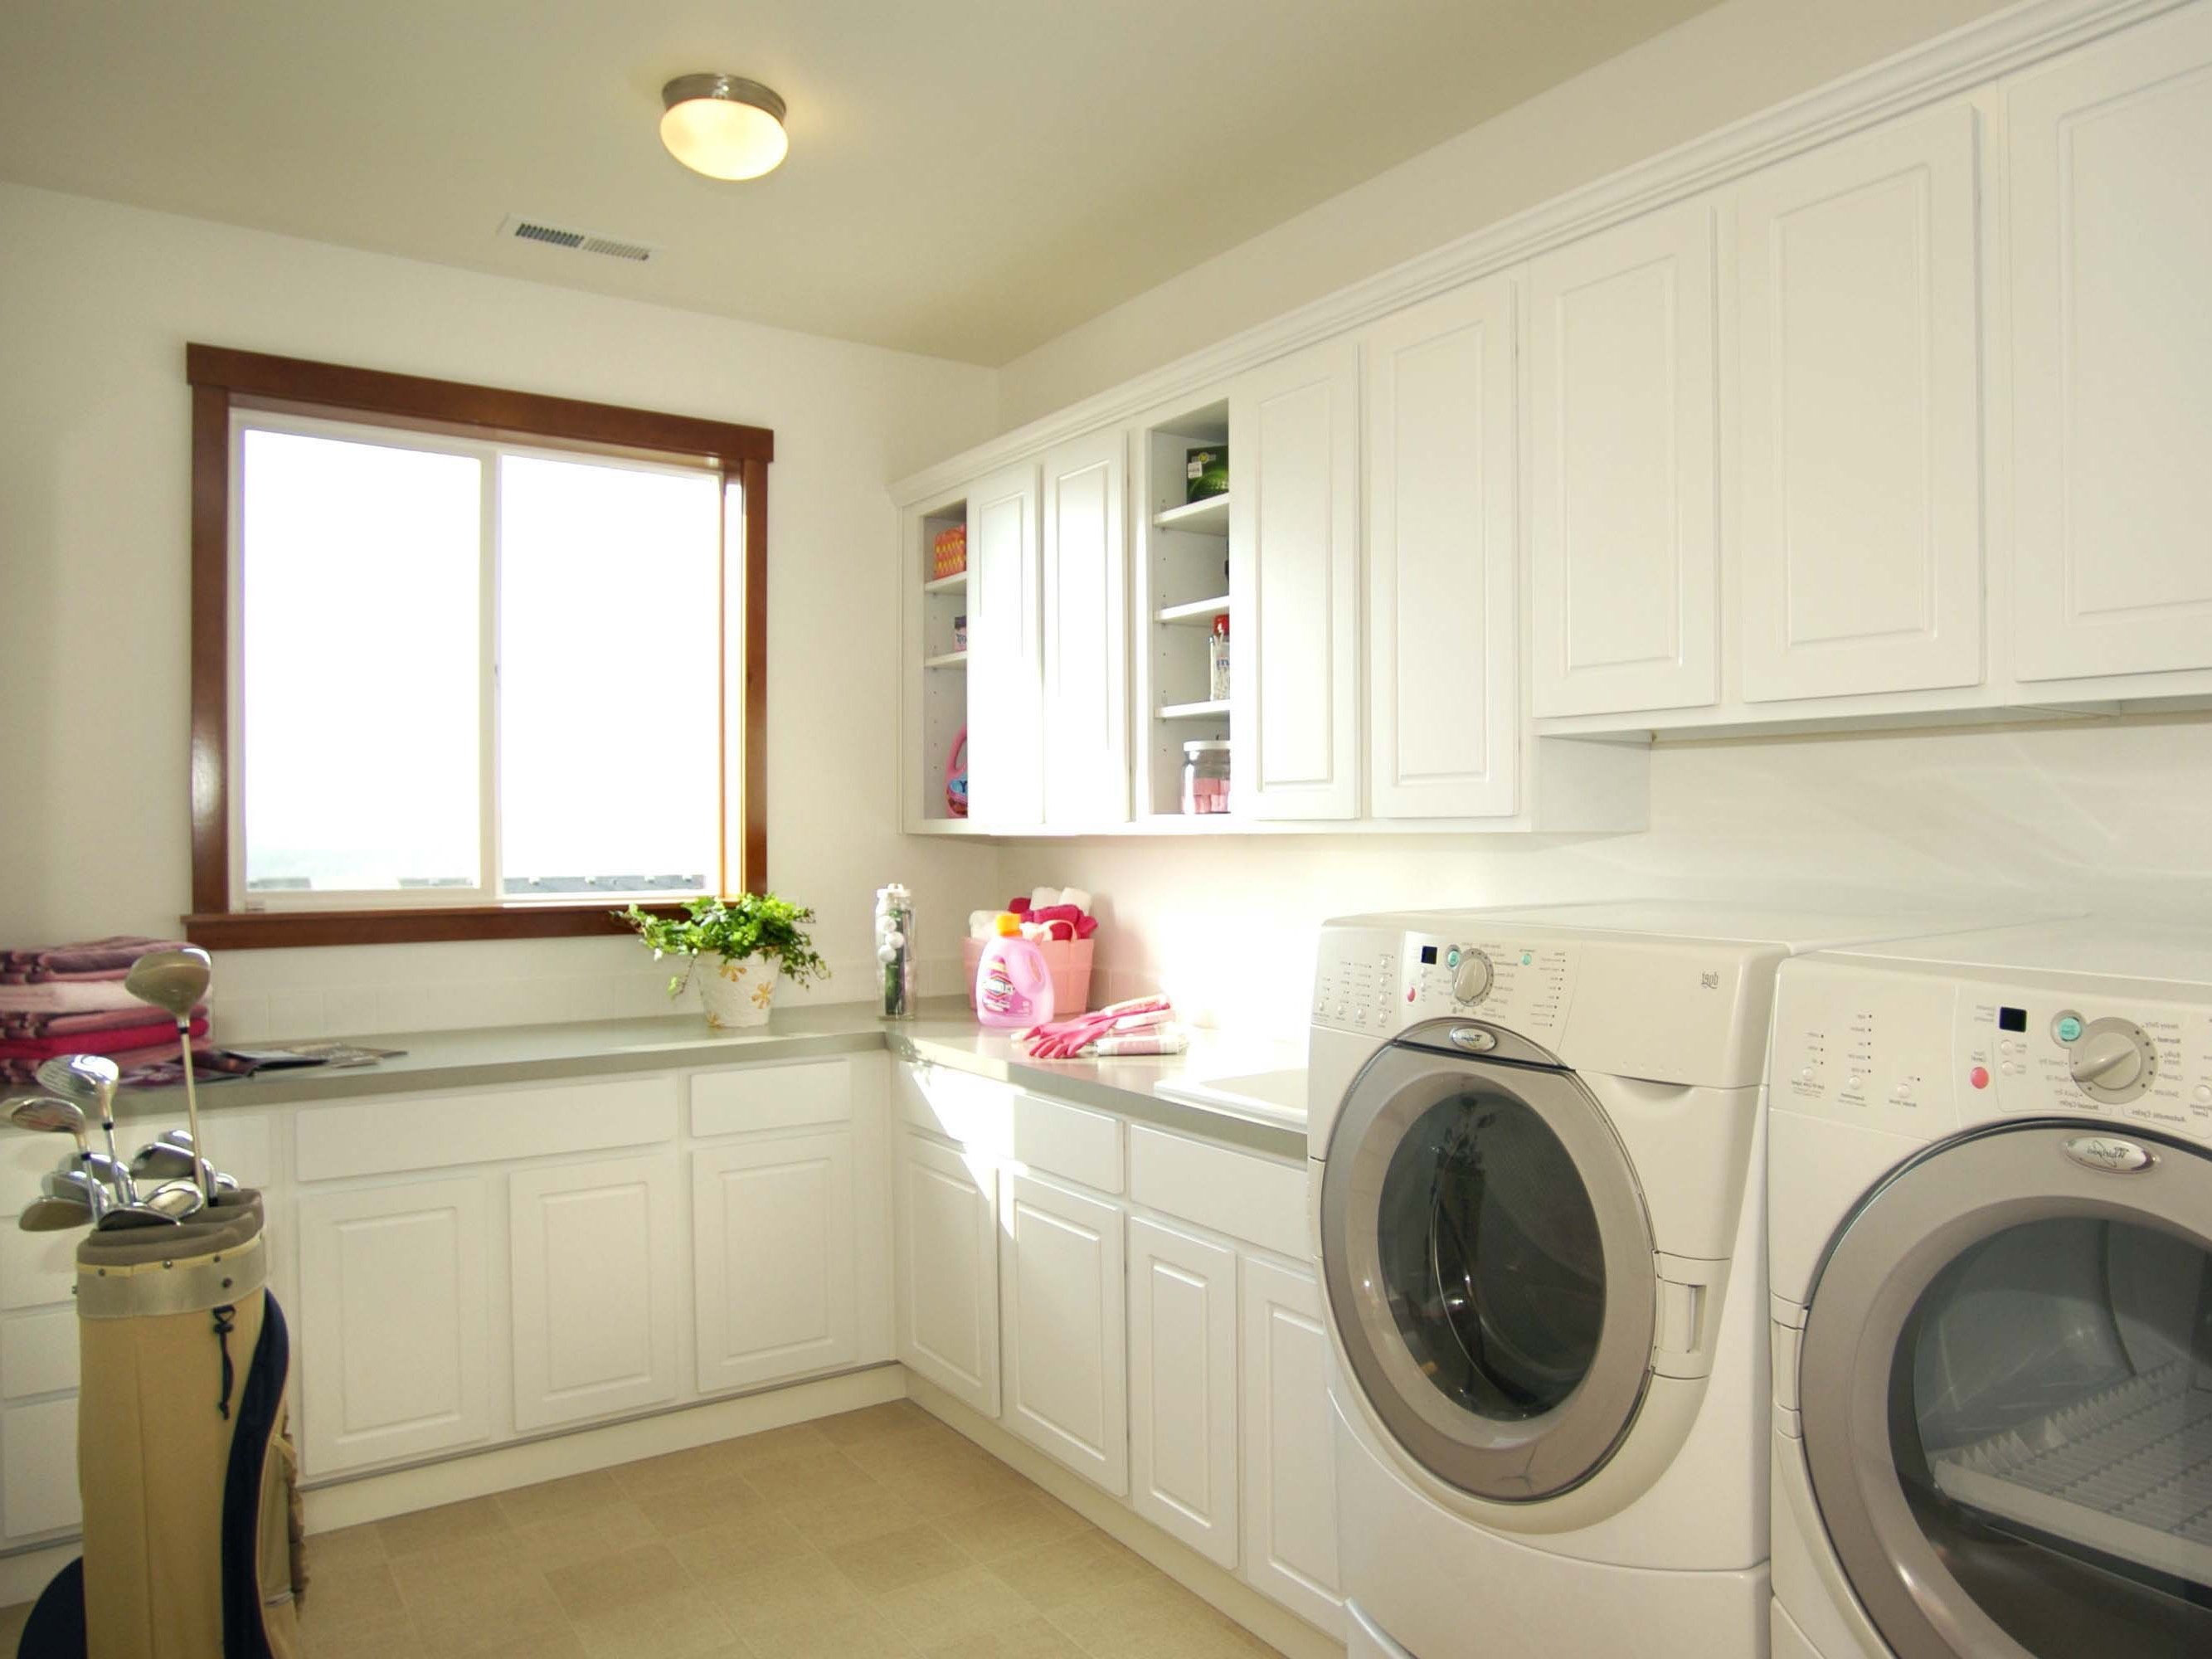 Fresh And Clean Laundry Room In Minimalist Design With Built In Storage Cabinets (Image 10 of 26)